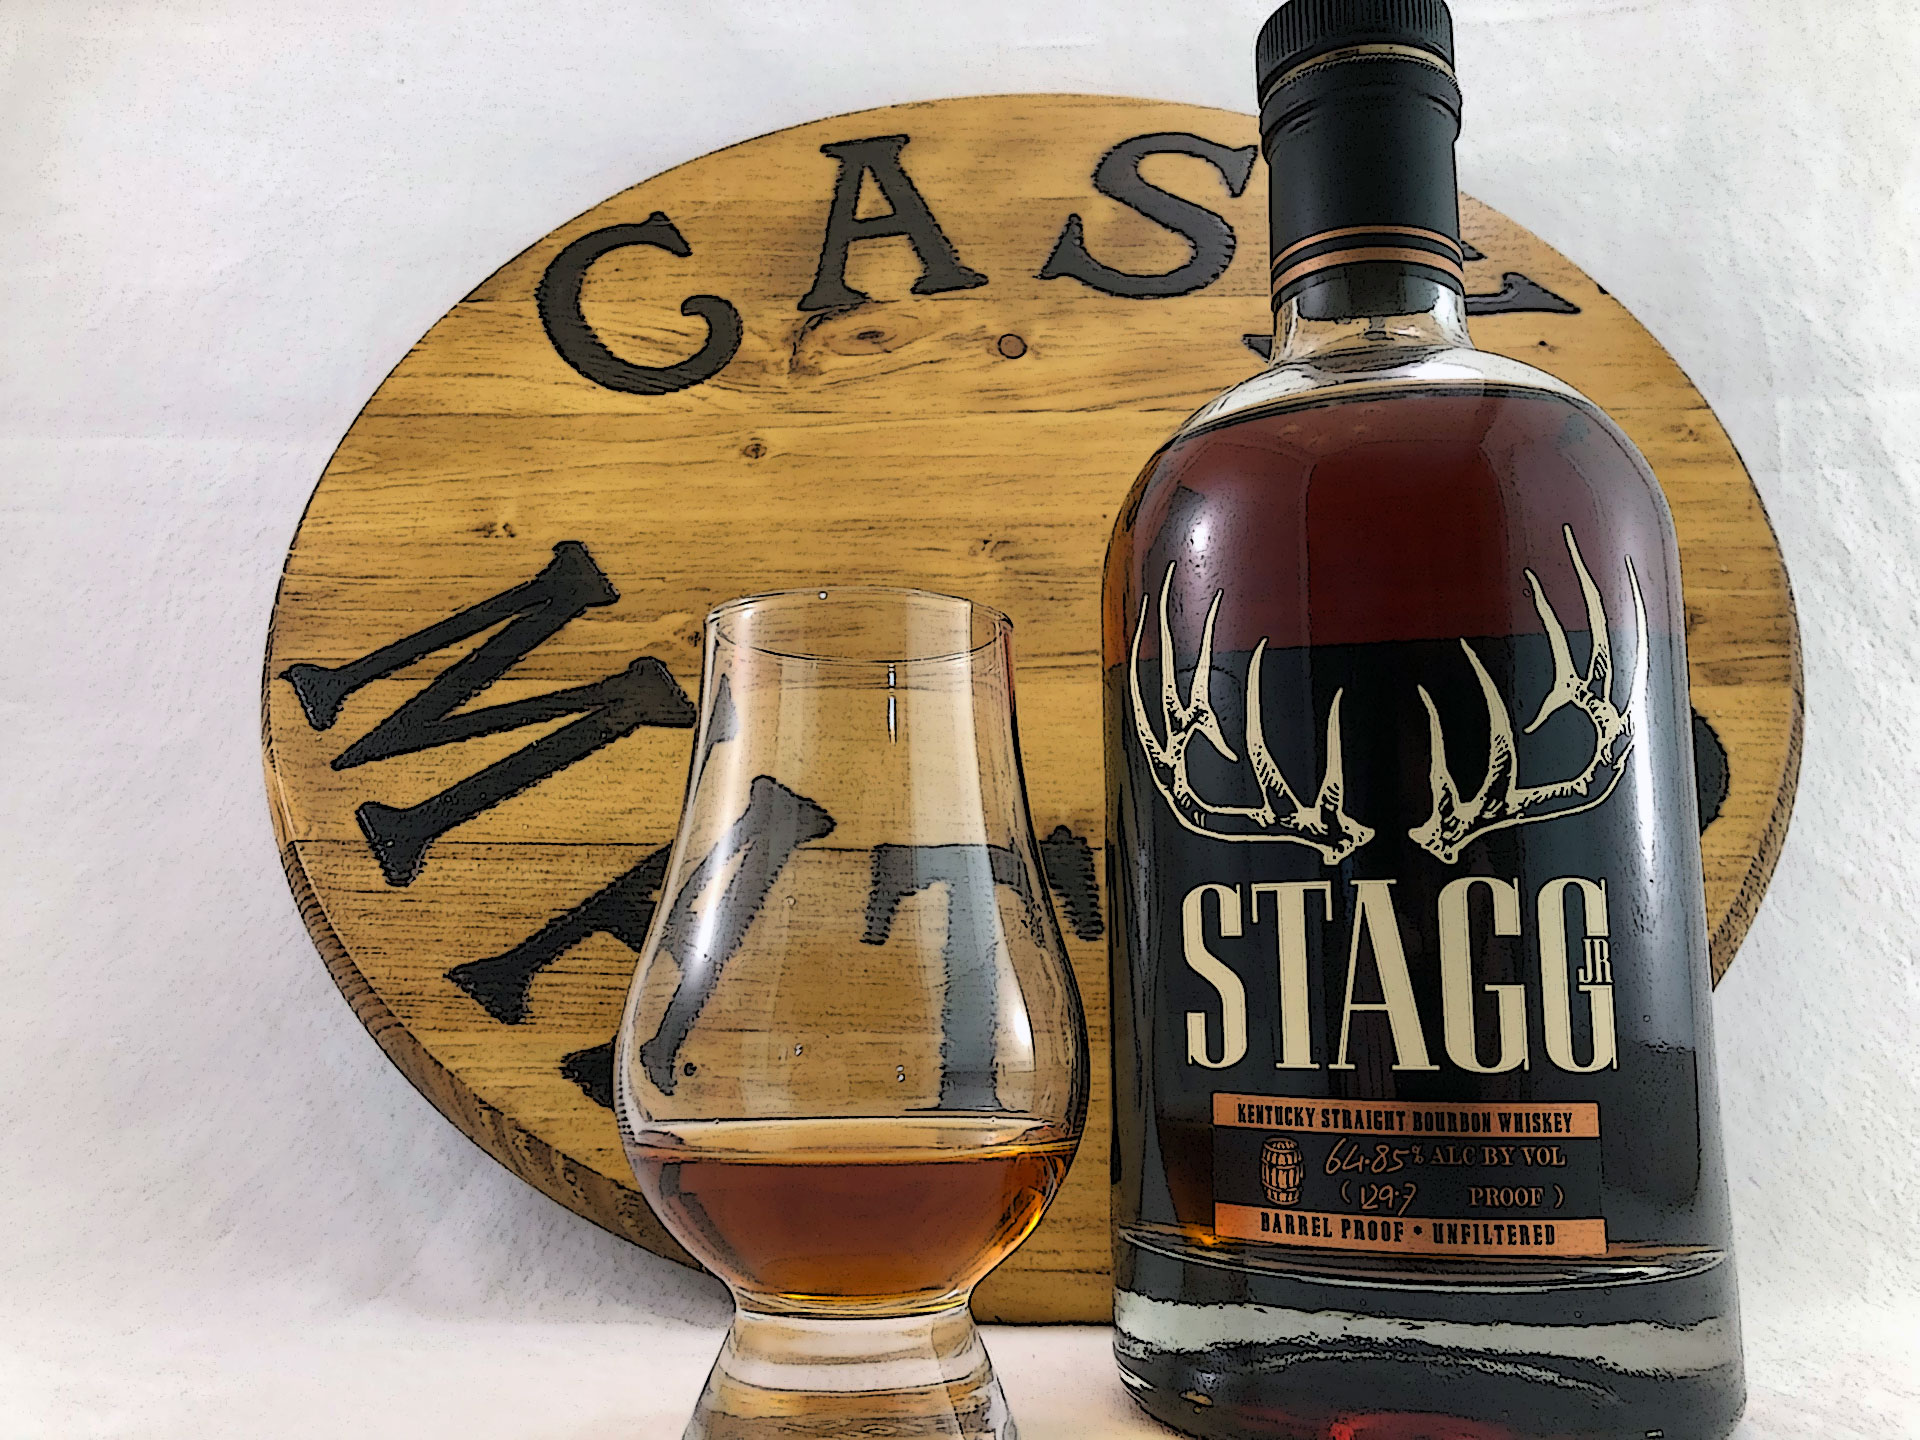 Stagg Jr. Bourbon